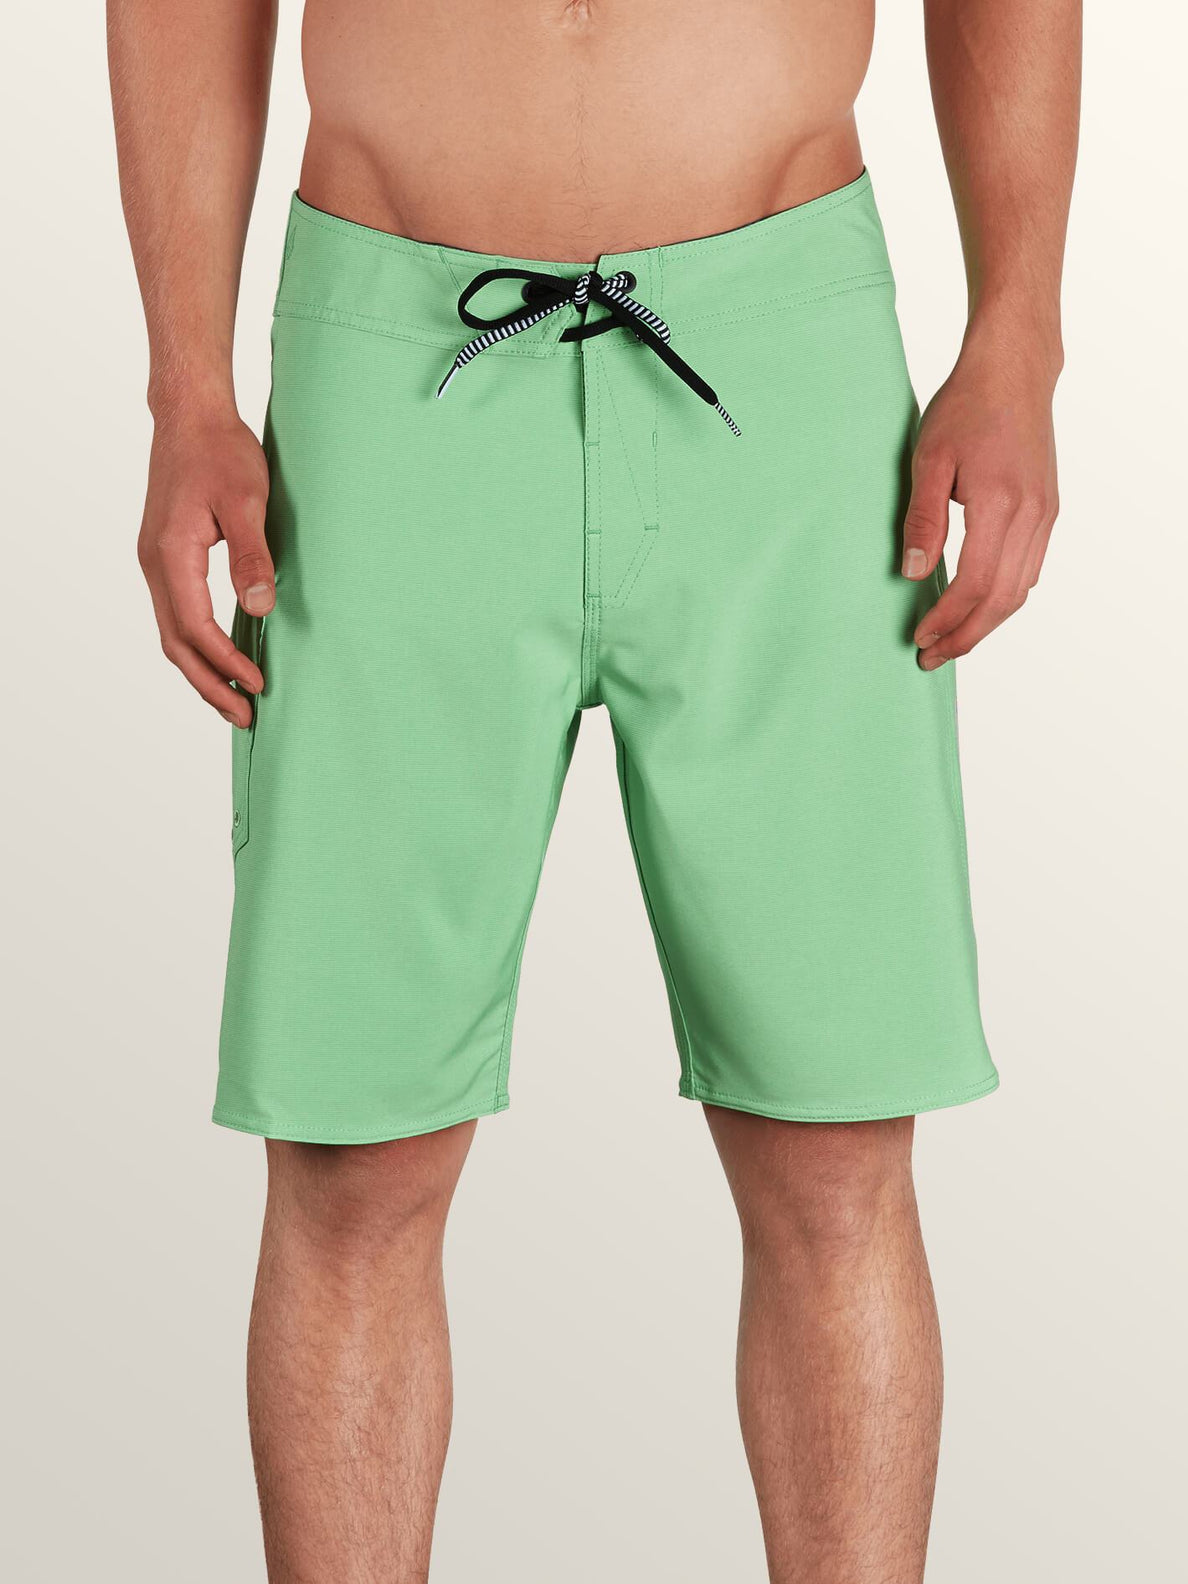 Lido Solid Mod Boardshorts In Poison Green, Front View